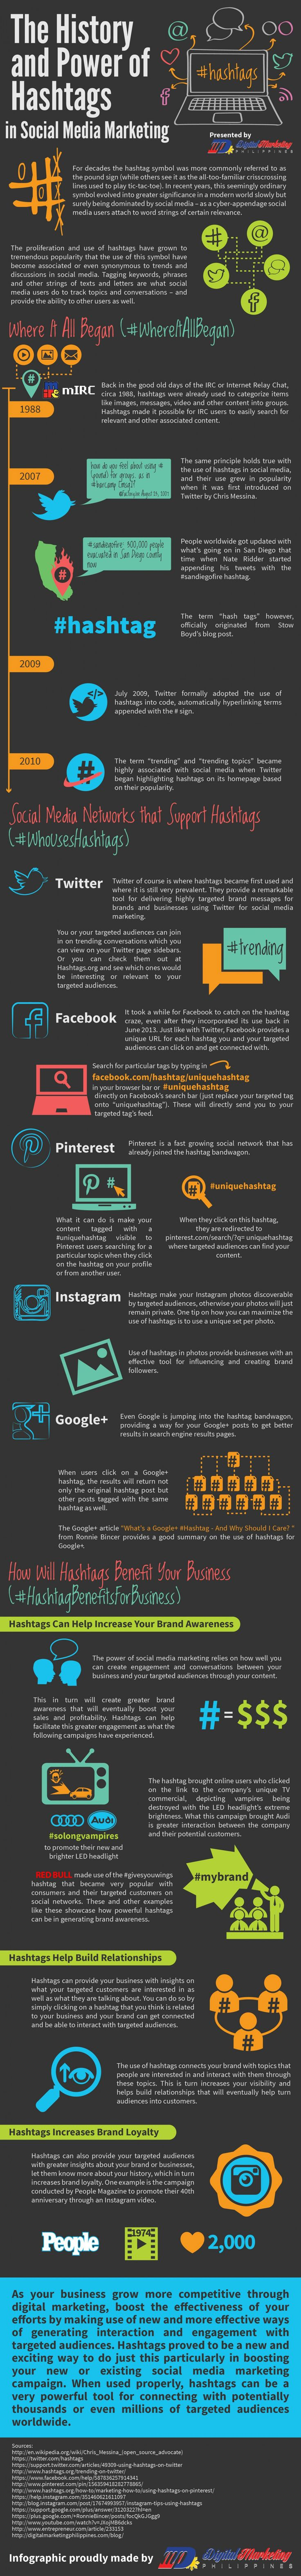 The History and Power of Hashtags in Social Media Marketing #infographic #socialmedia